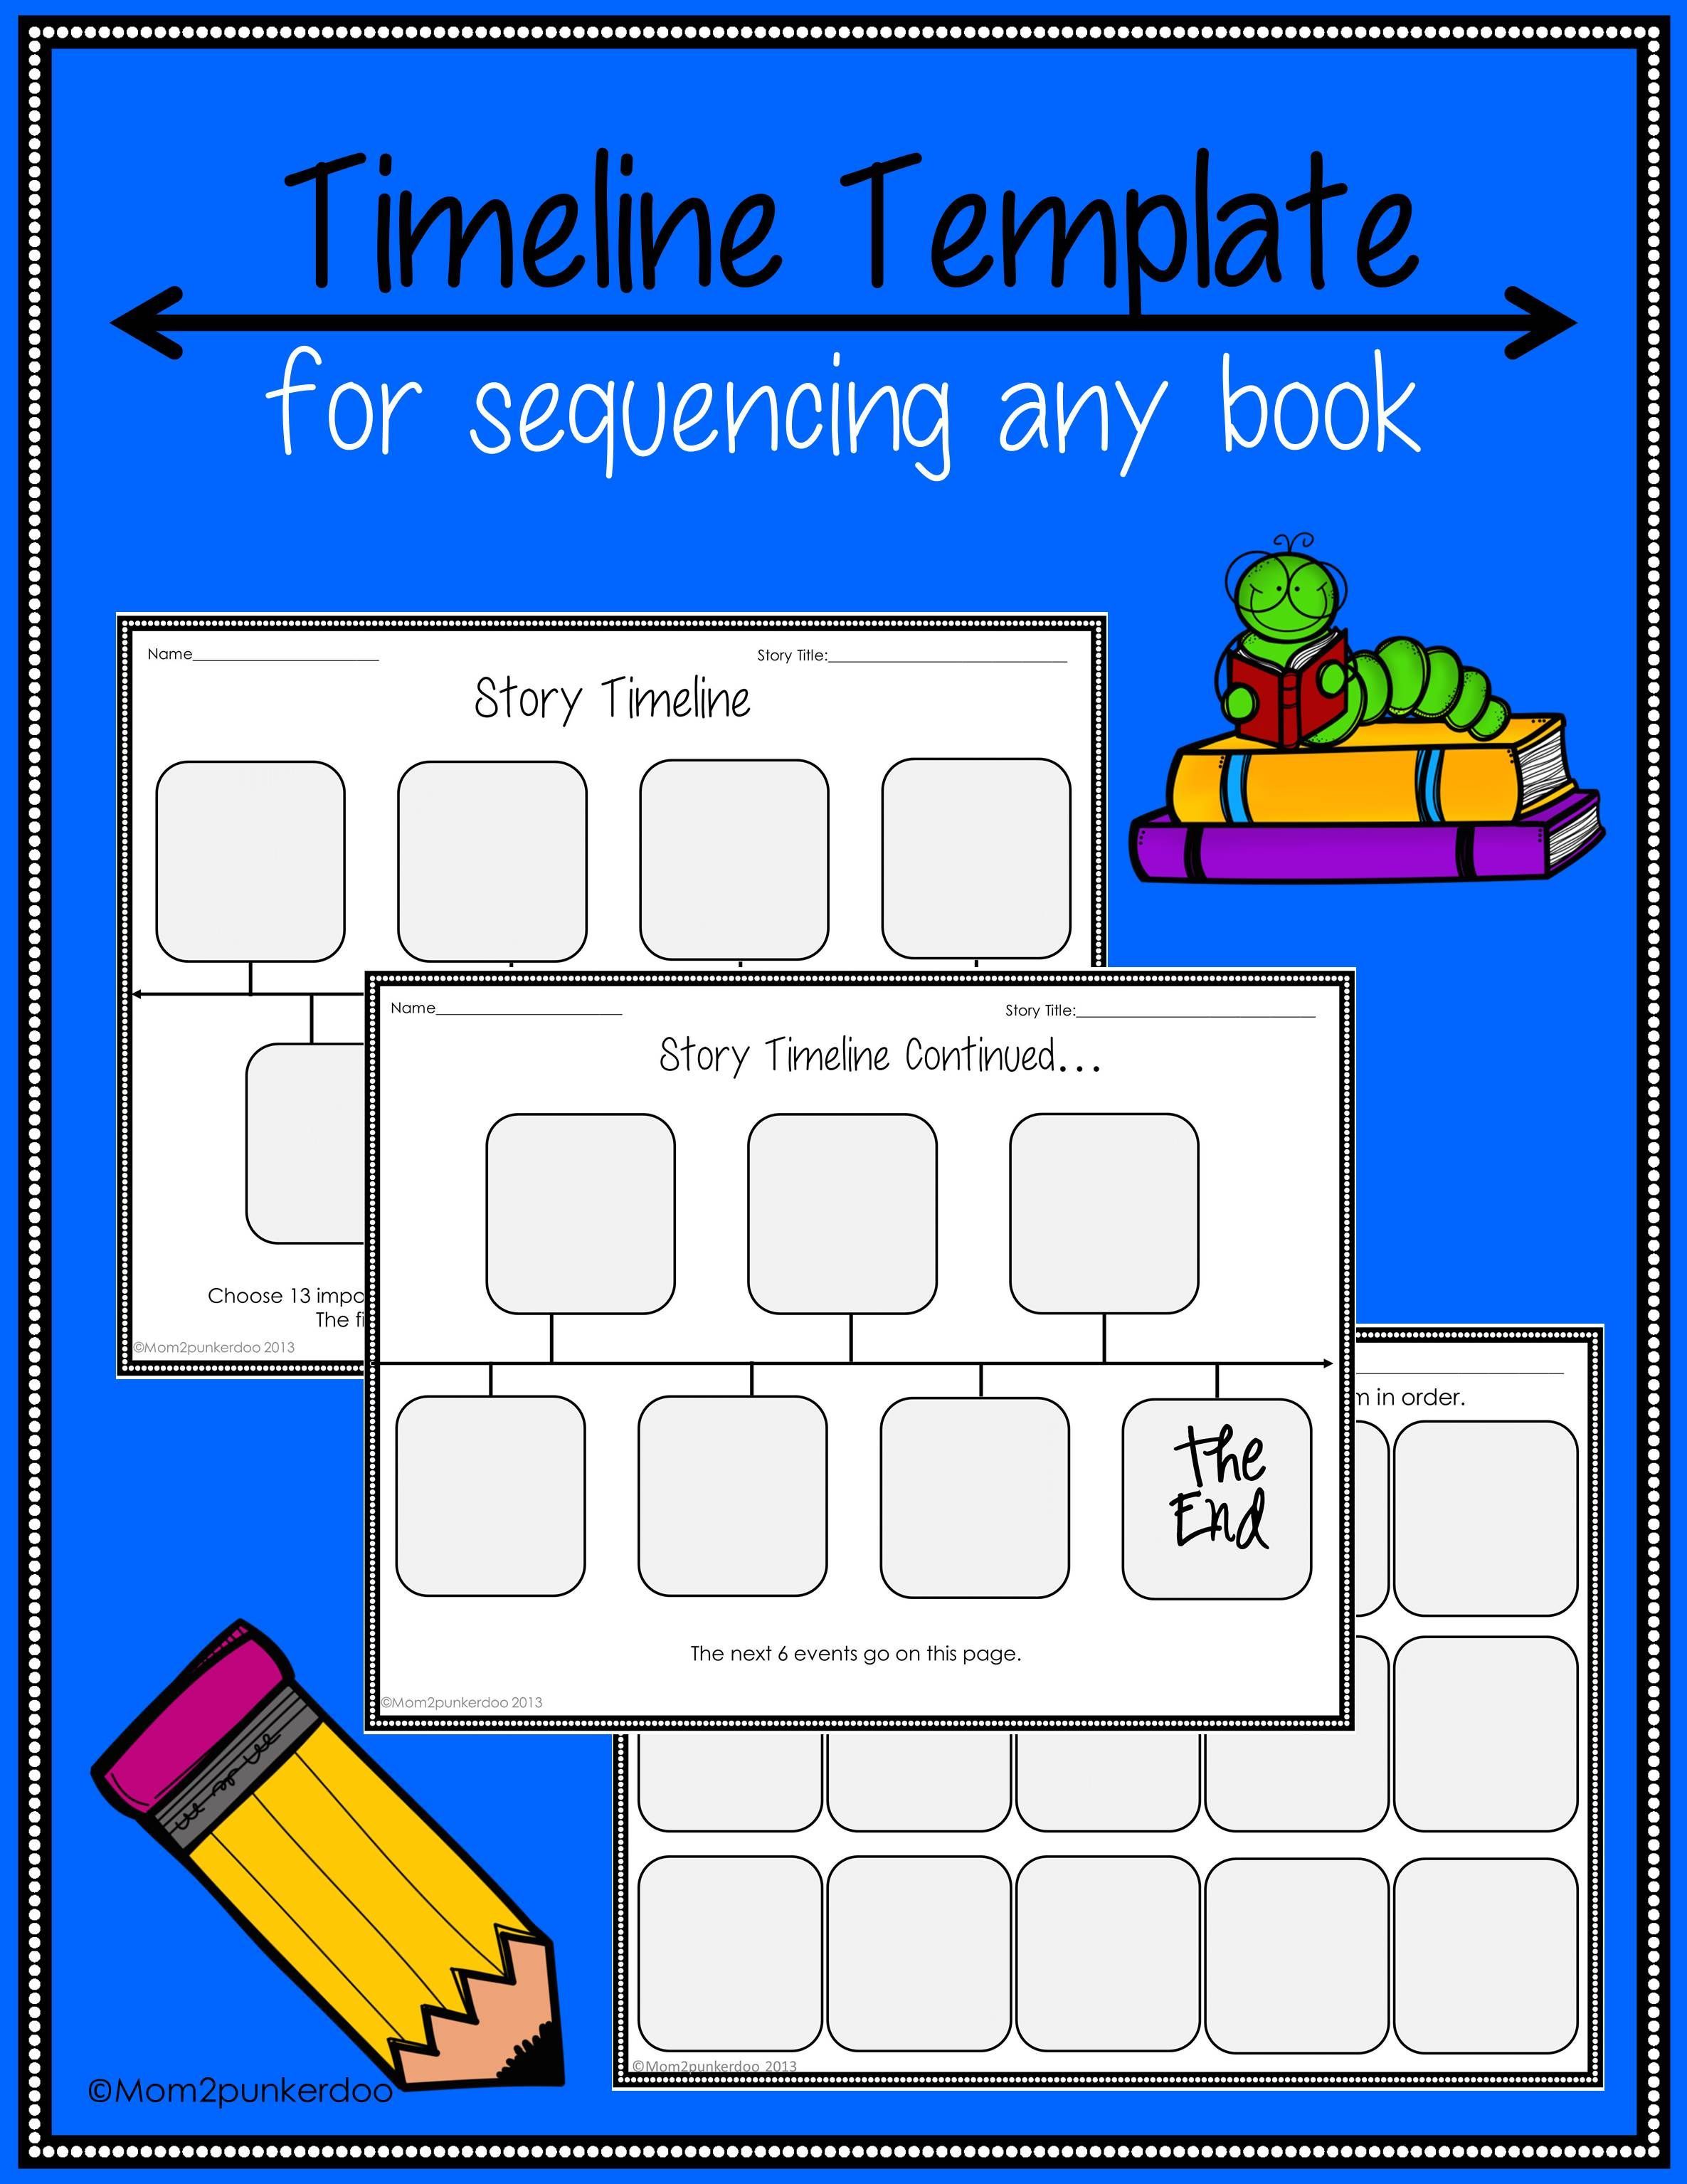 Simple story timeline template for sequencing any book. $ #timeline